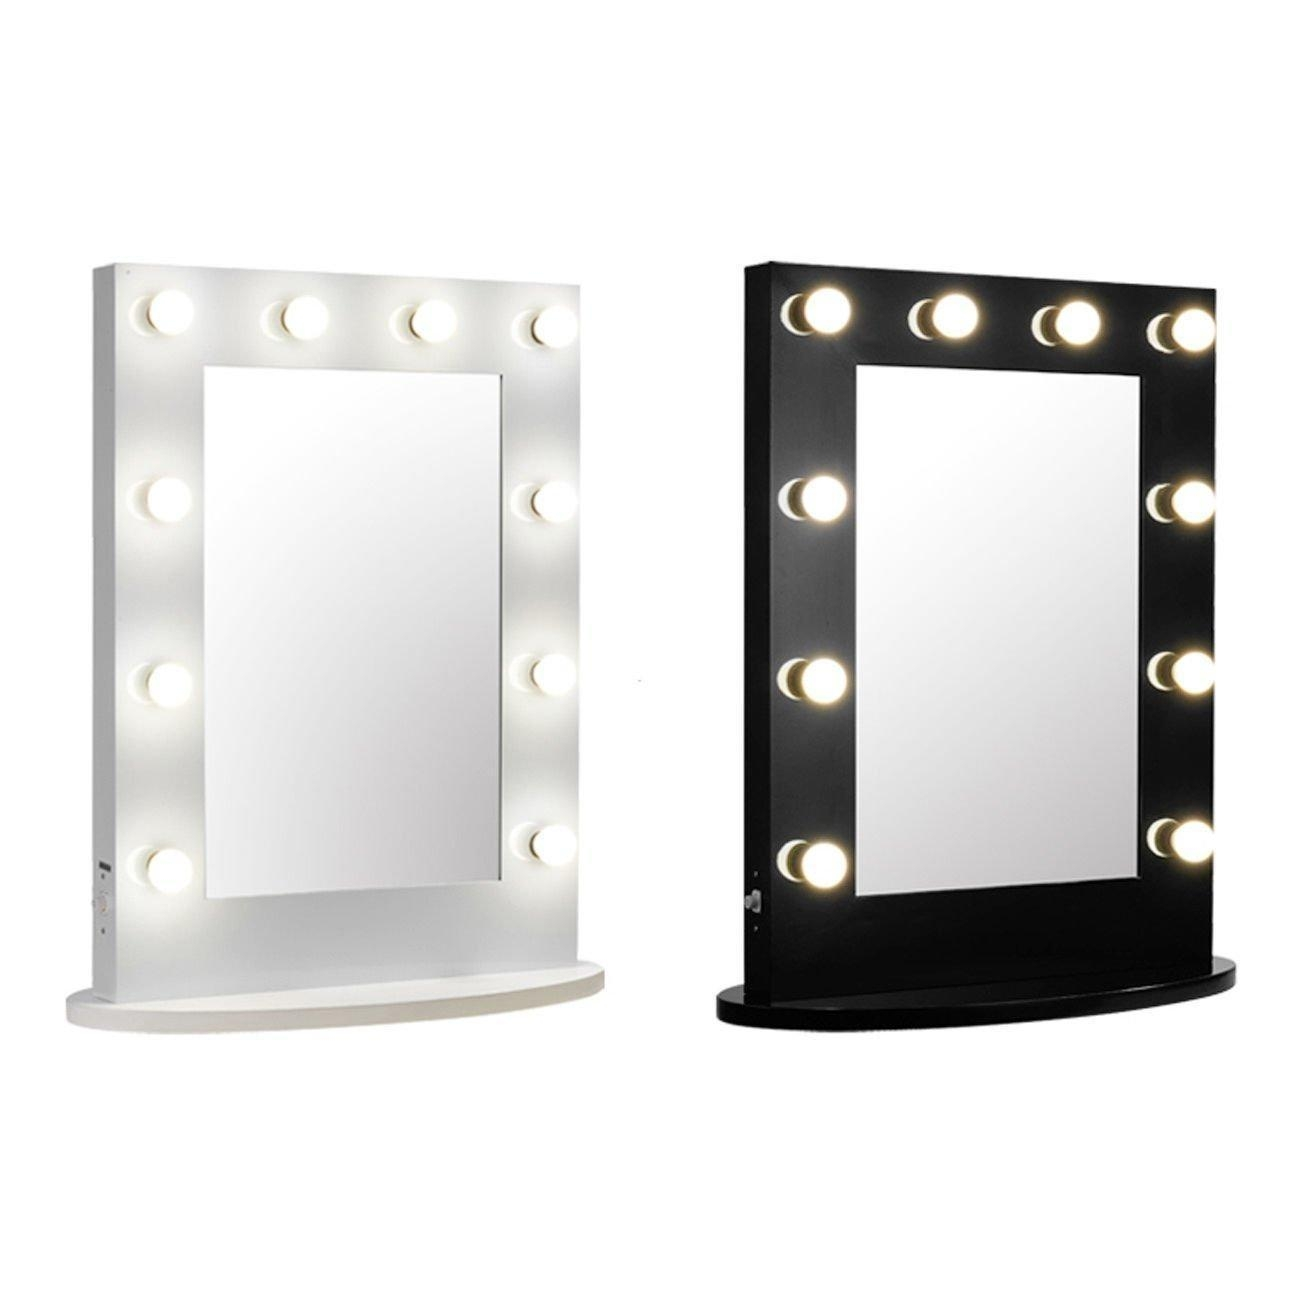 Stylish Ideas Wall Mounted Makeup Mirror With Light Pretentious Inside Lighted Vanity Wall Mirrors (Image 18 of 20)